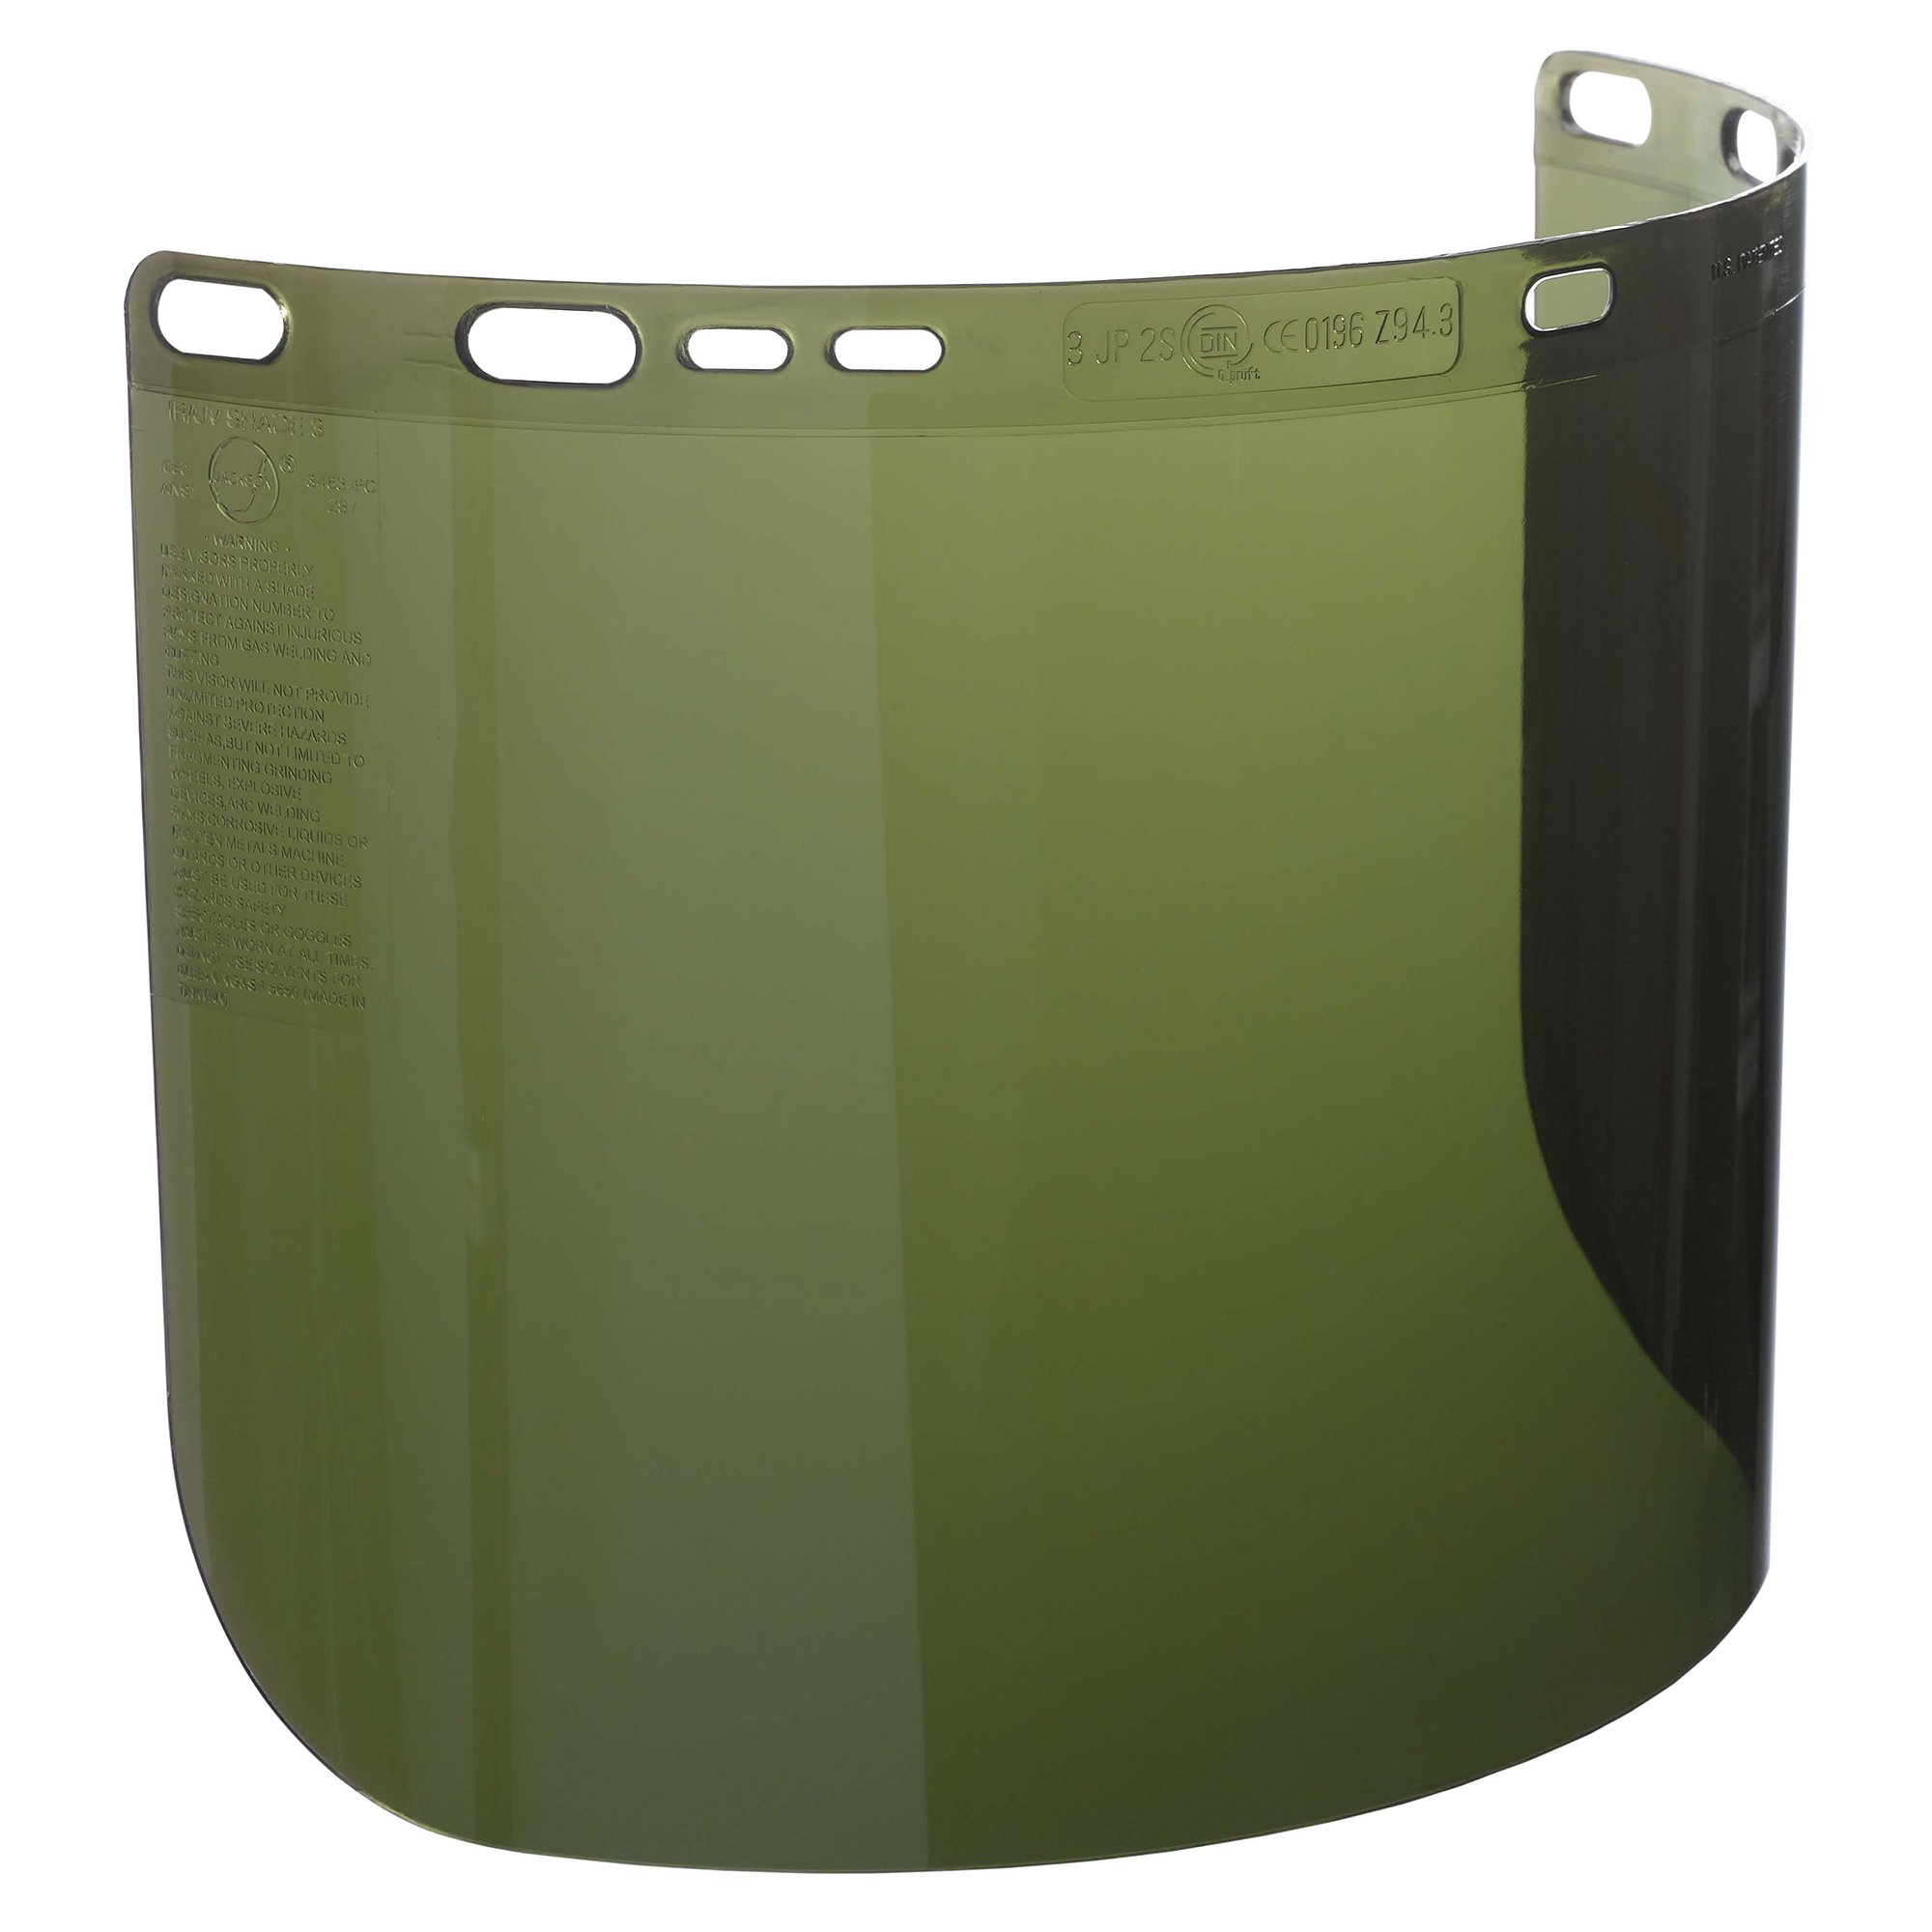 "Jackson Safety F50 Specialty High Impact Face Shield (26262), Polycarbonate, 8"" x 15.5"" x 0.06"", IRUV 3.0, Face Protection, Unbound, 12 Shields / Case"